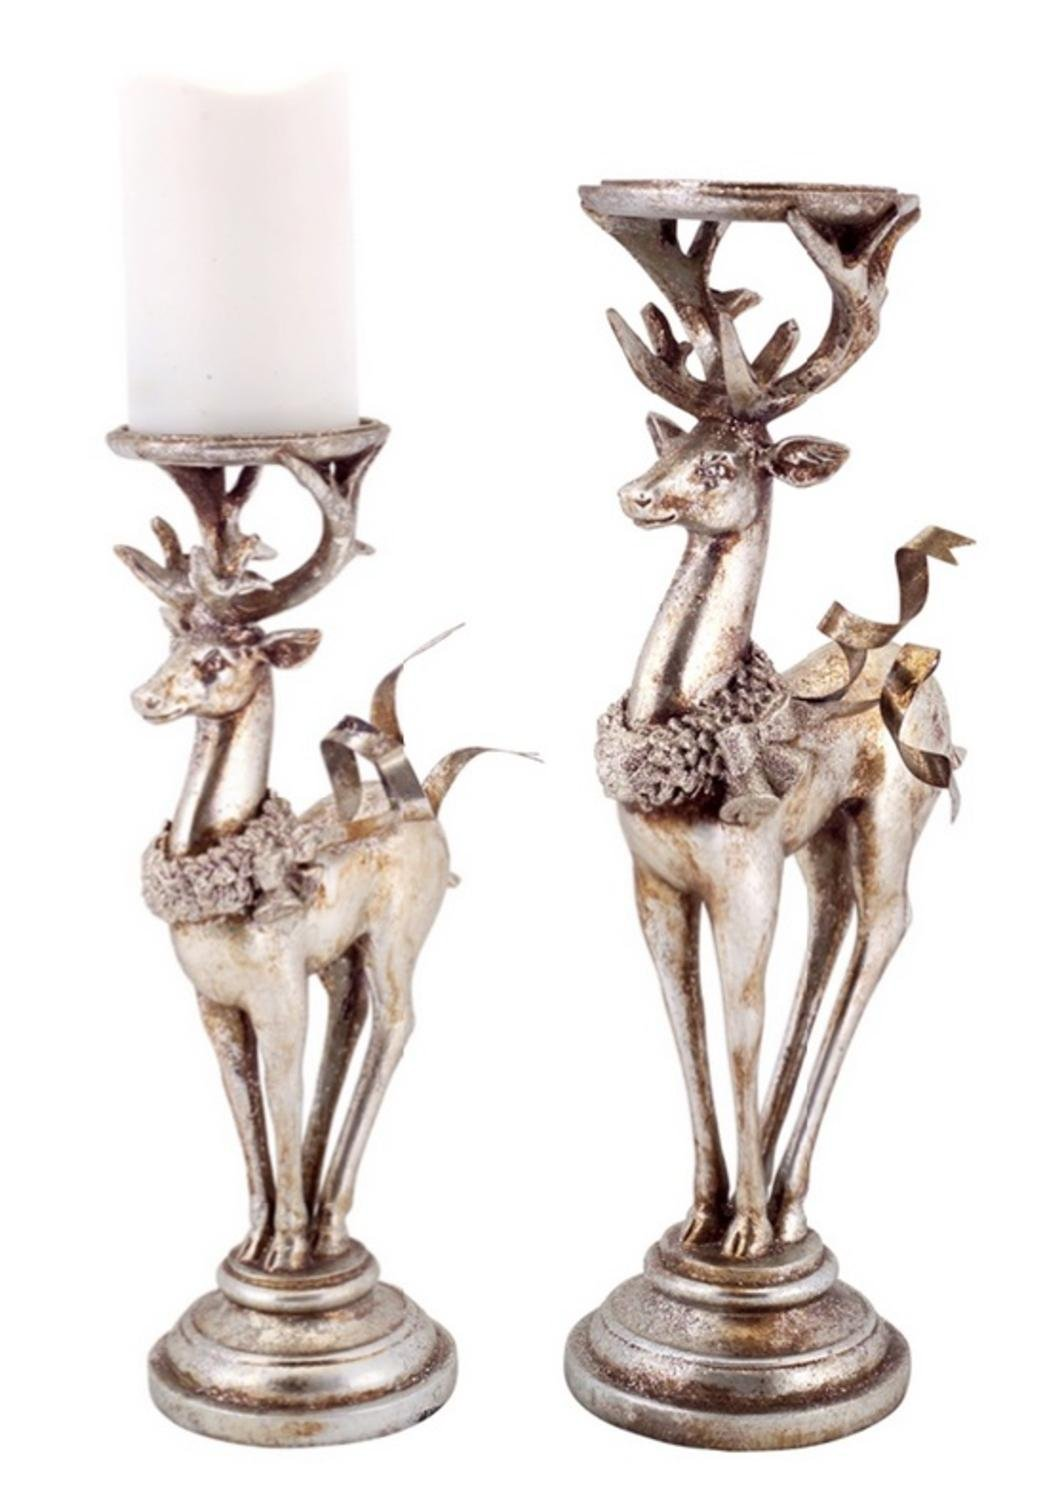 Distressed Silver Deer Christmas Candle Holders Set of 2 | ChristmasTablescapeDecor.com